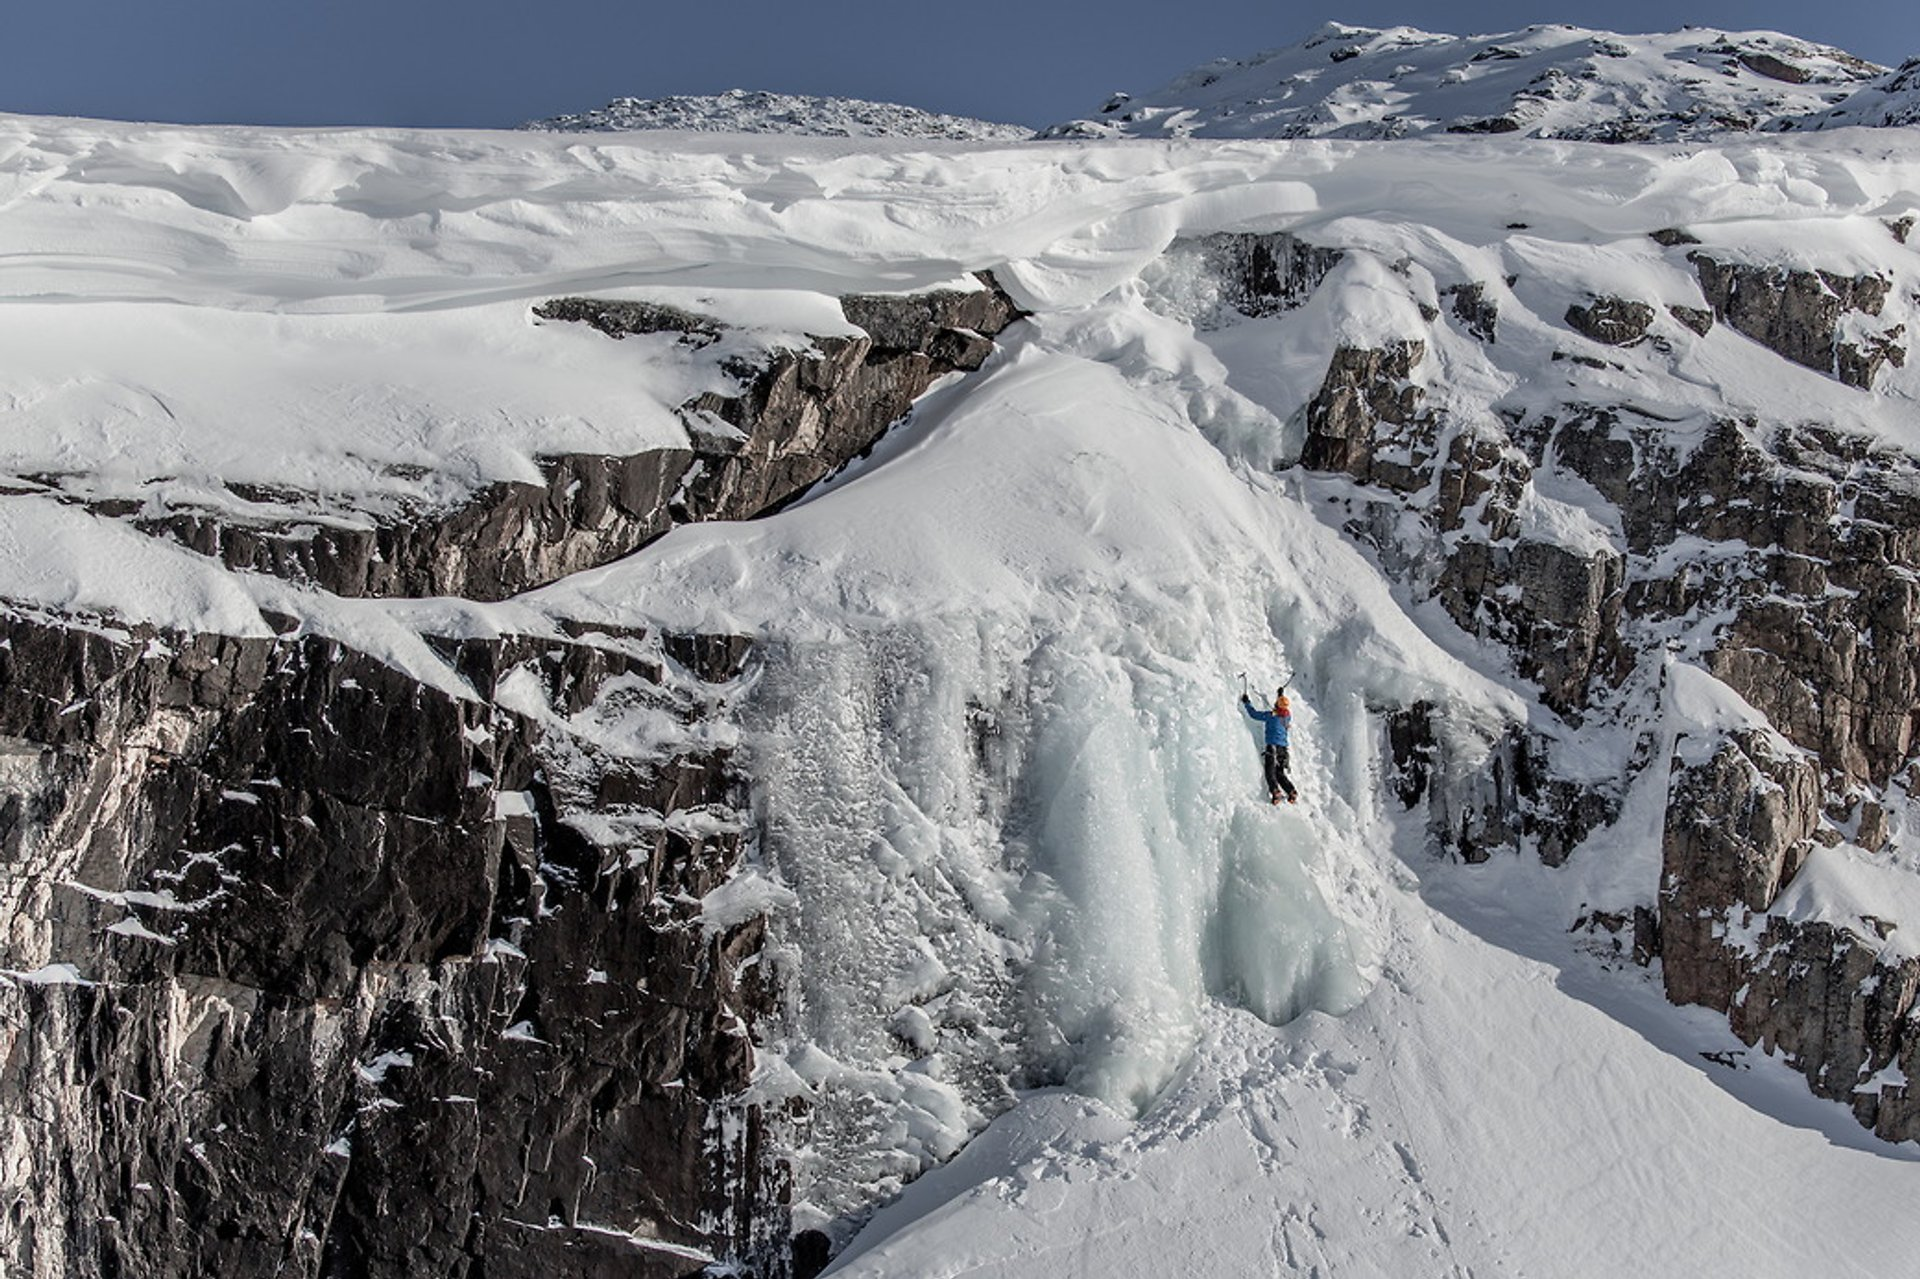 A frozen waterfall used for ice climbing near Ilulissat in Greenland 2019